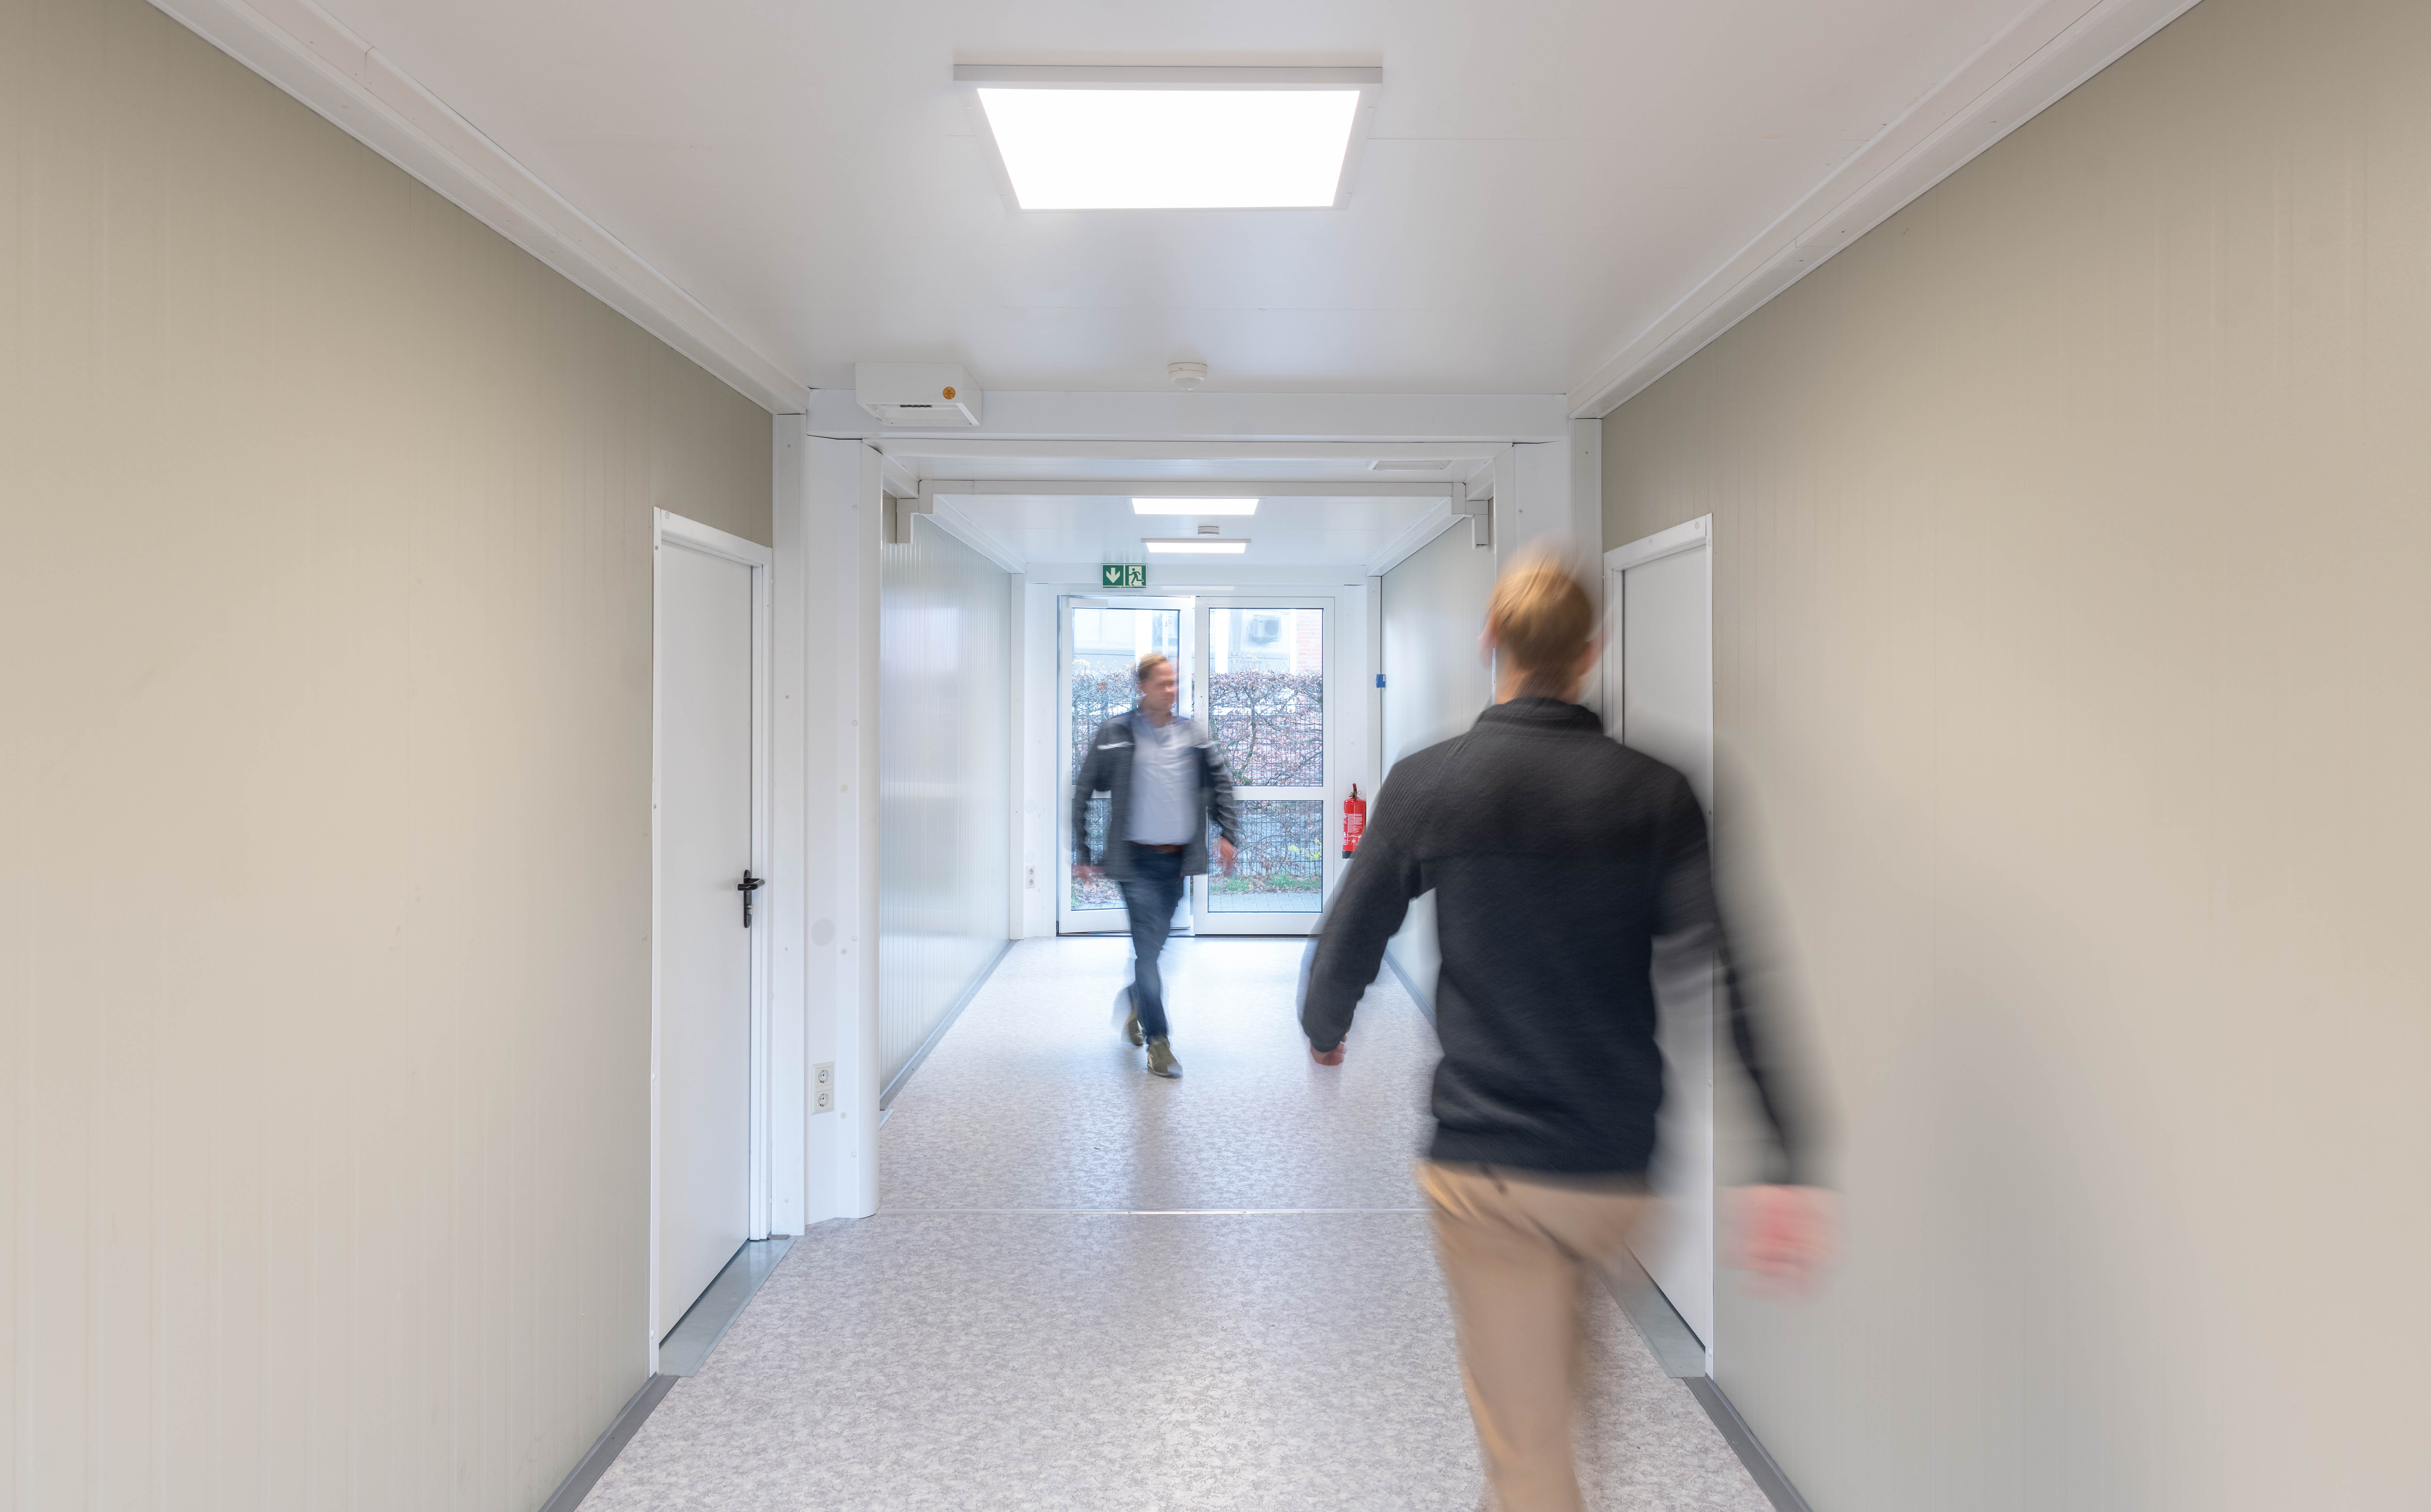 Spacious corridors made of ELA quality all-rounders connect the classrooms.